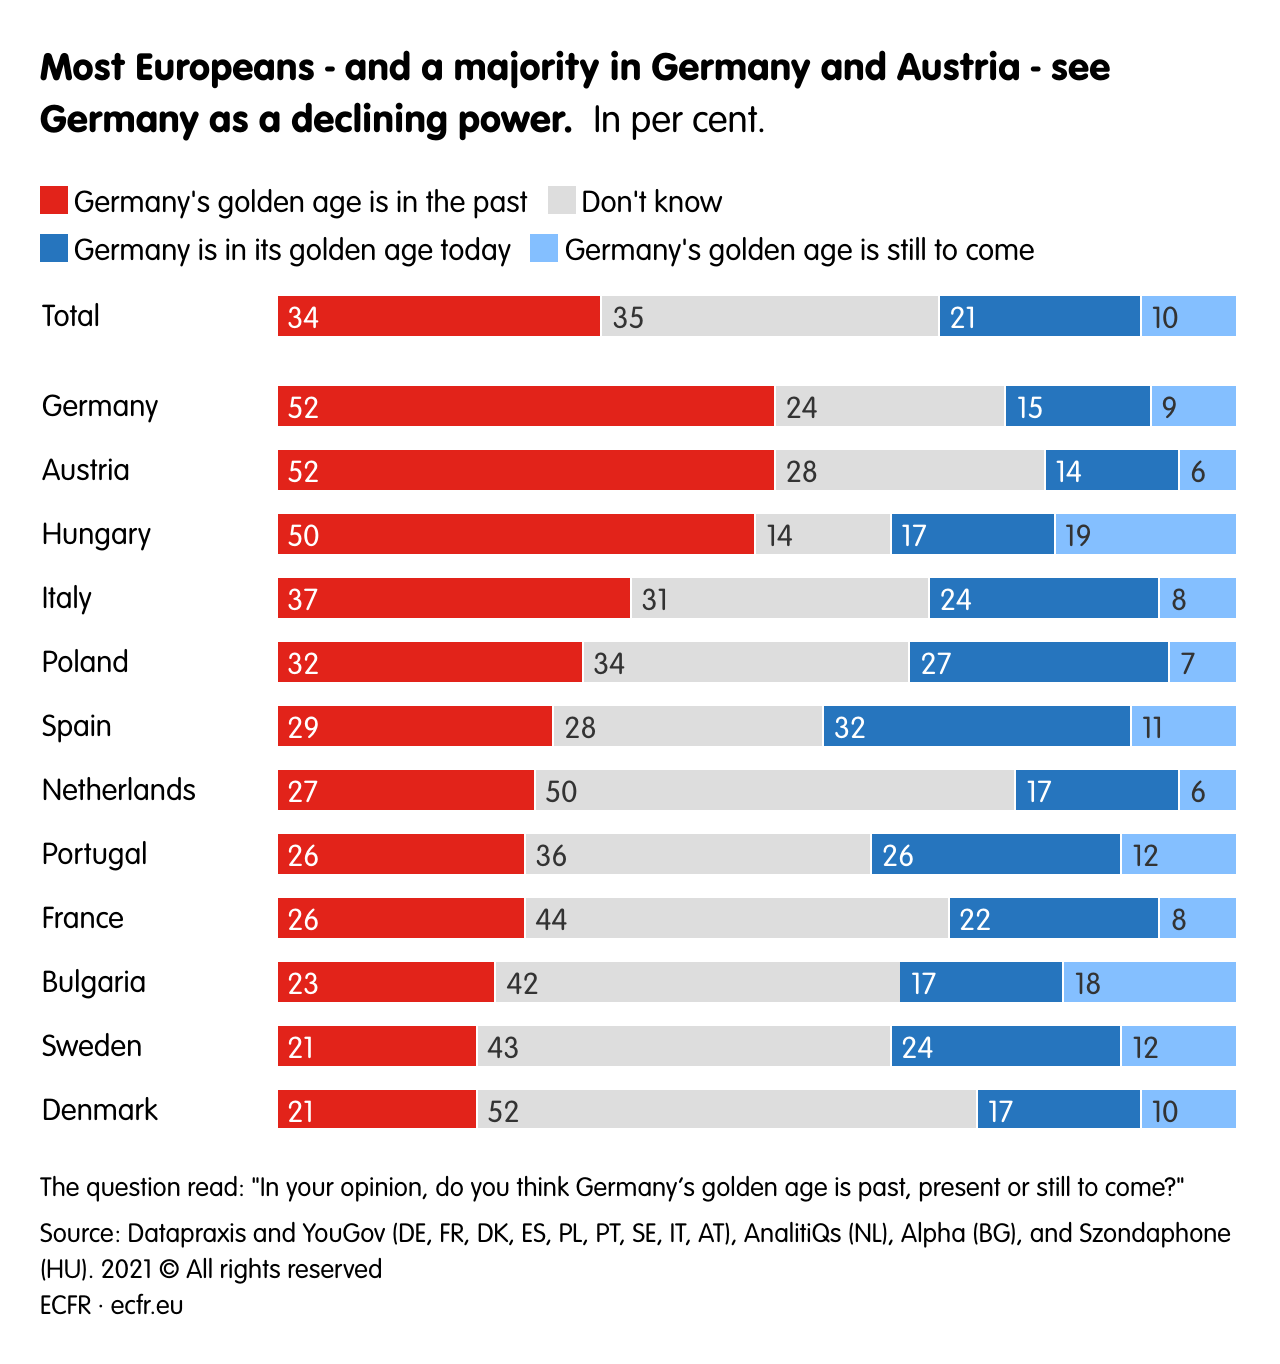 Most Europeans - and a majority in Germany and Austria - see Germany as a declining power.